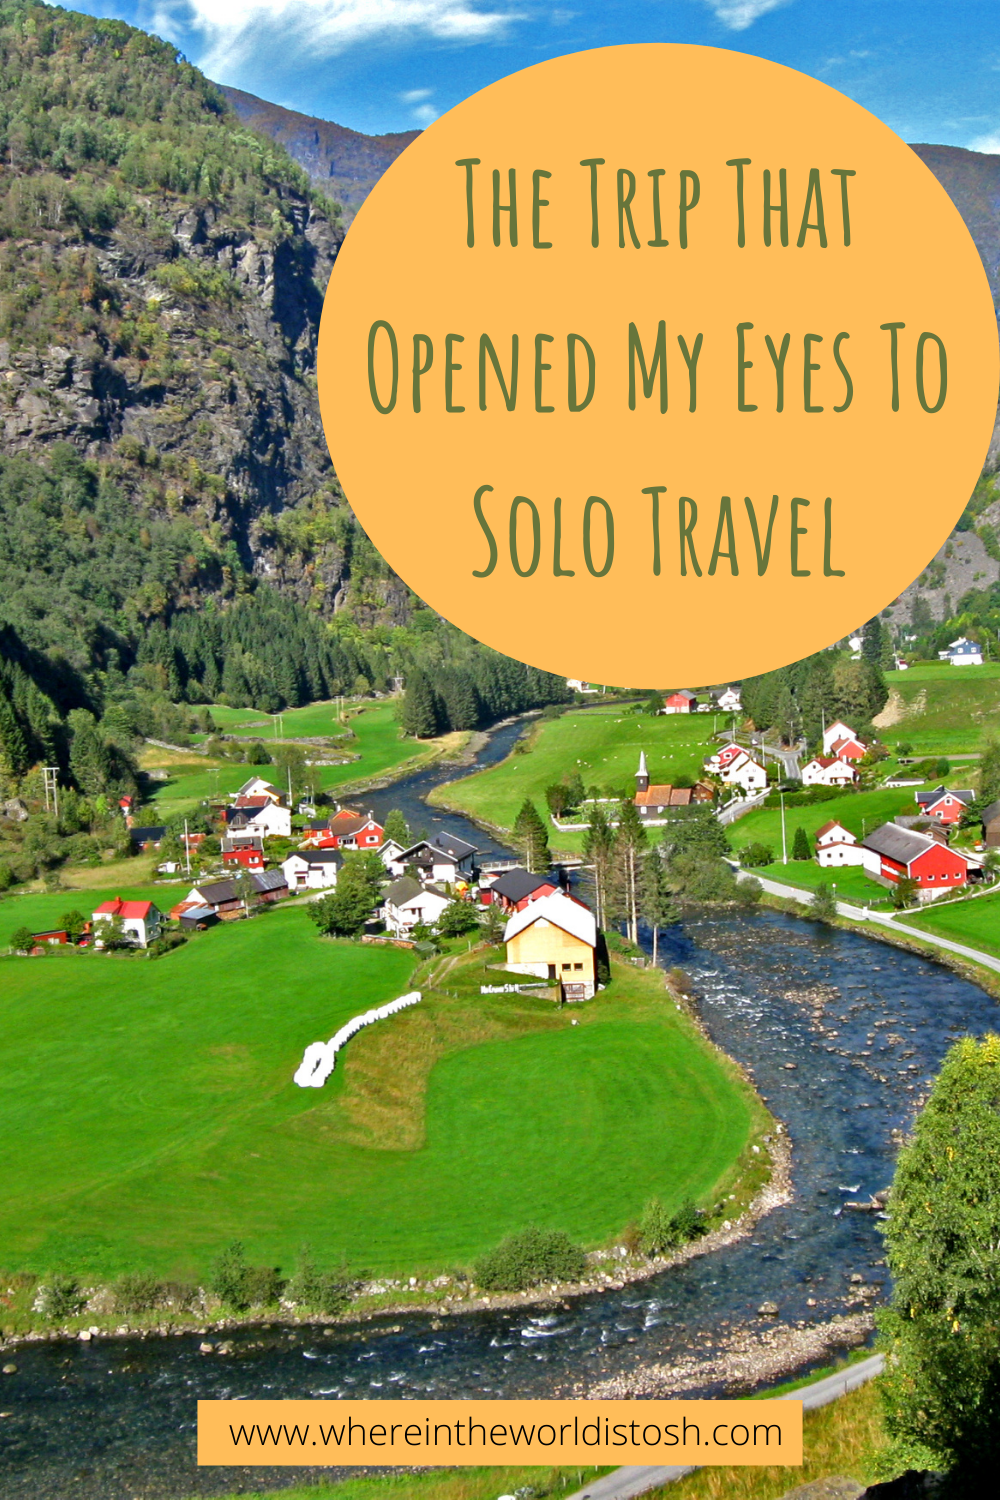 The Trip That Opened My Eyes To Solo Travel